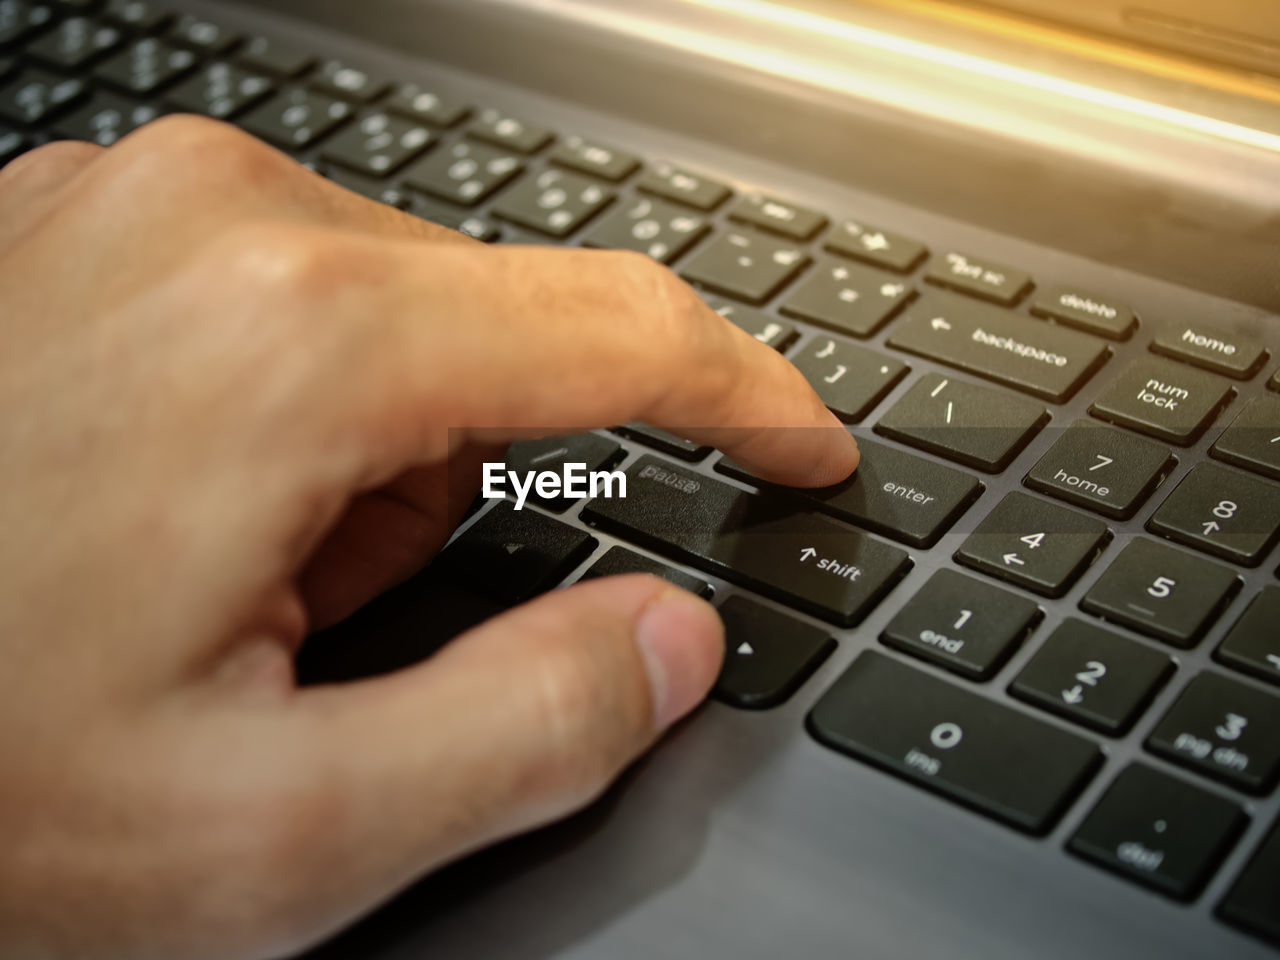 CROPPED IMAGE OF PERSON USING LAPTOP